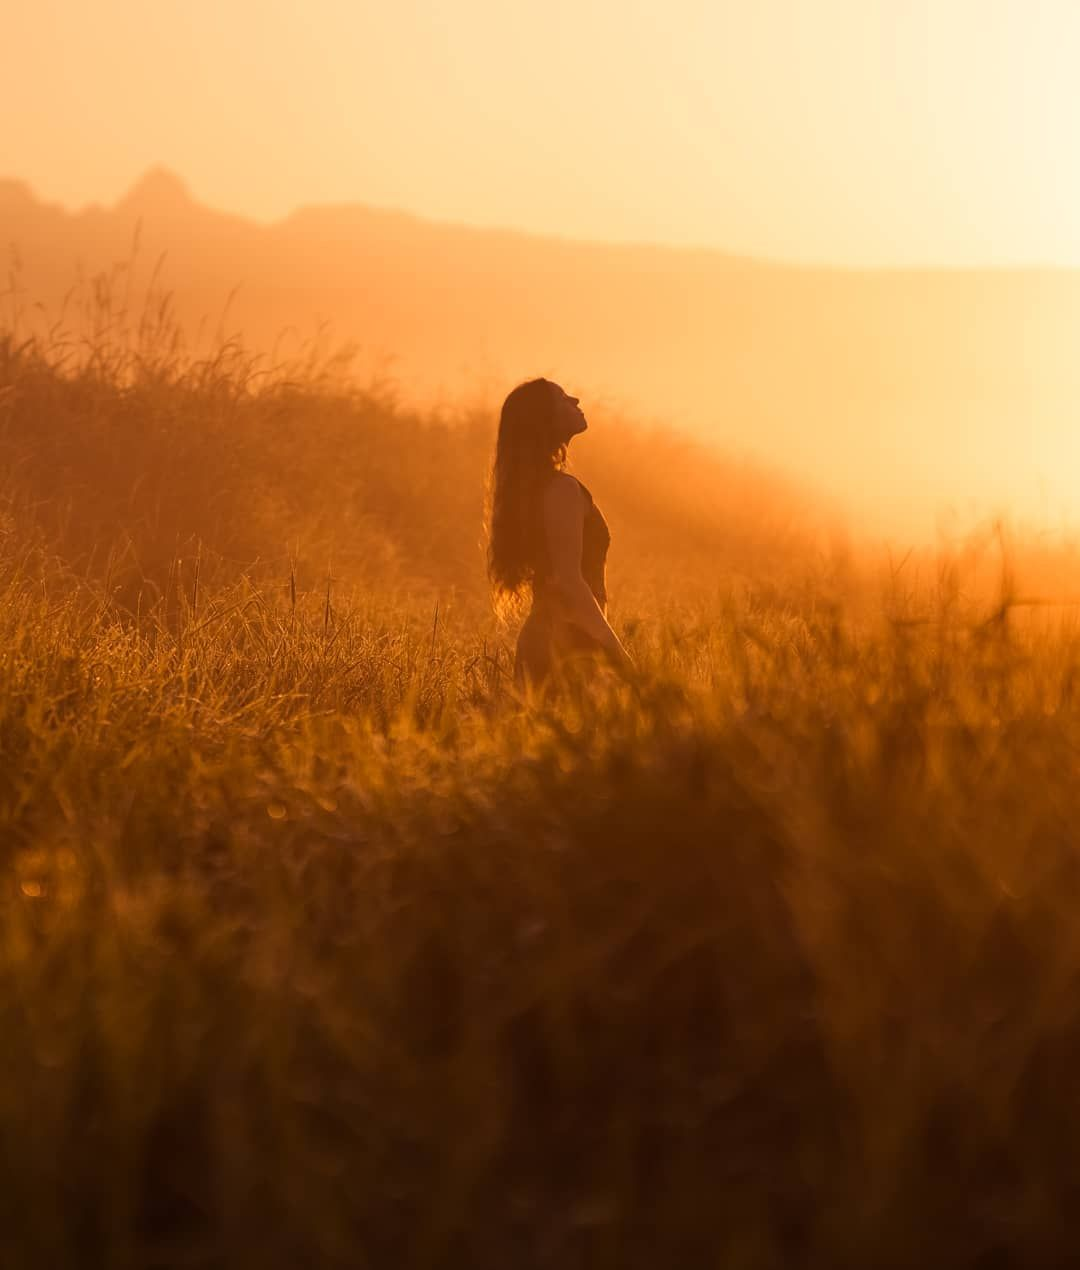 Lizzy Gadd S Photography Truly Shows The Difference Between A Selfie And A Self Portrait Golden Hour Photography Photography Sunrise